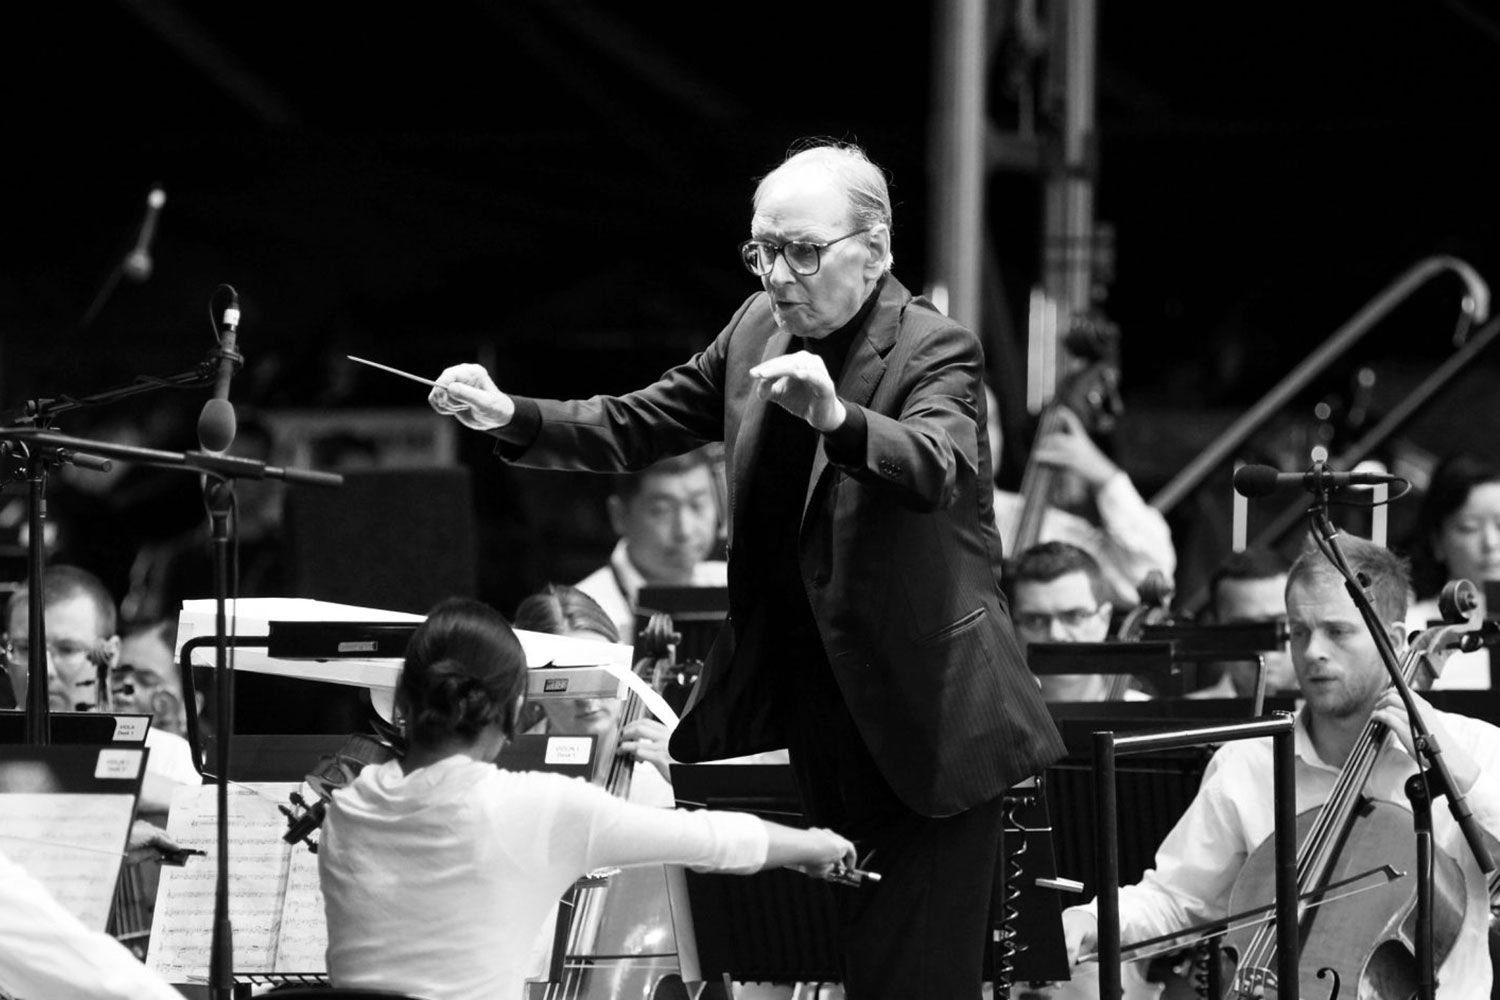 Morricone the conductor bringing his music to life